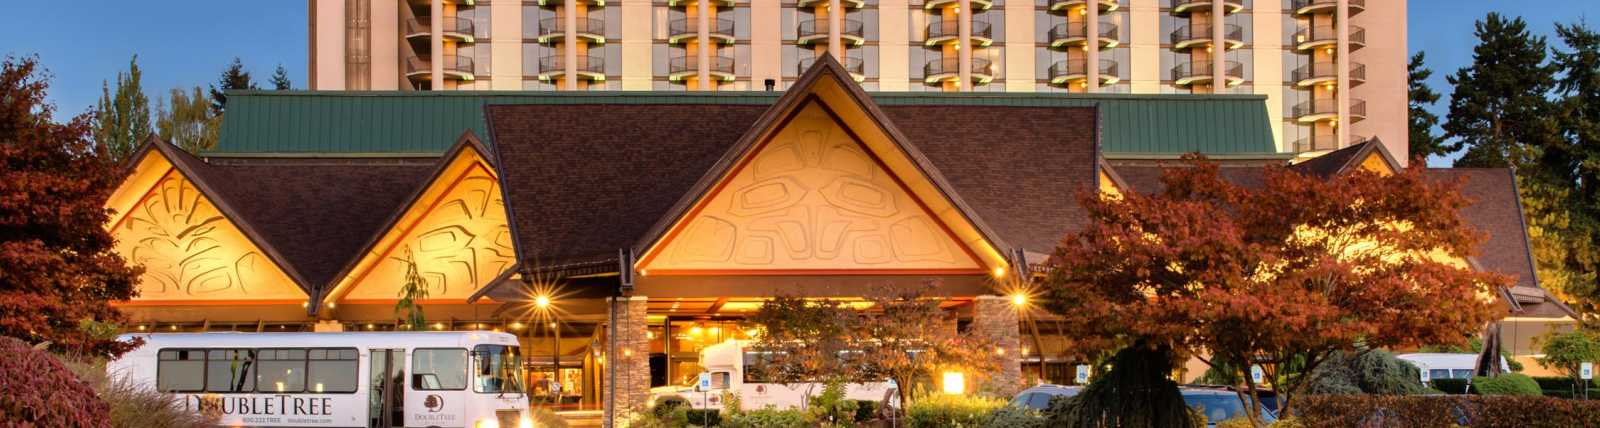 meeting-facility-DoubleTree_by_Hilton_Seattle_Airport_Meeting_Facility.jpg